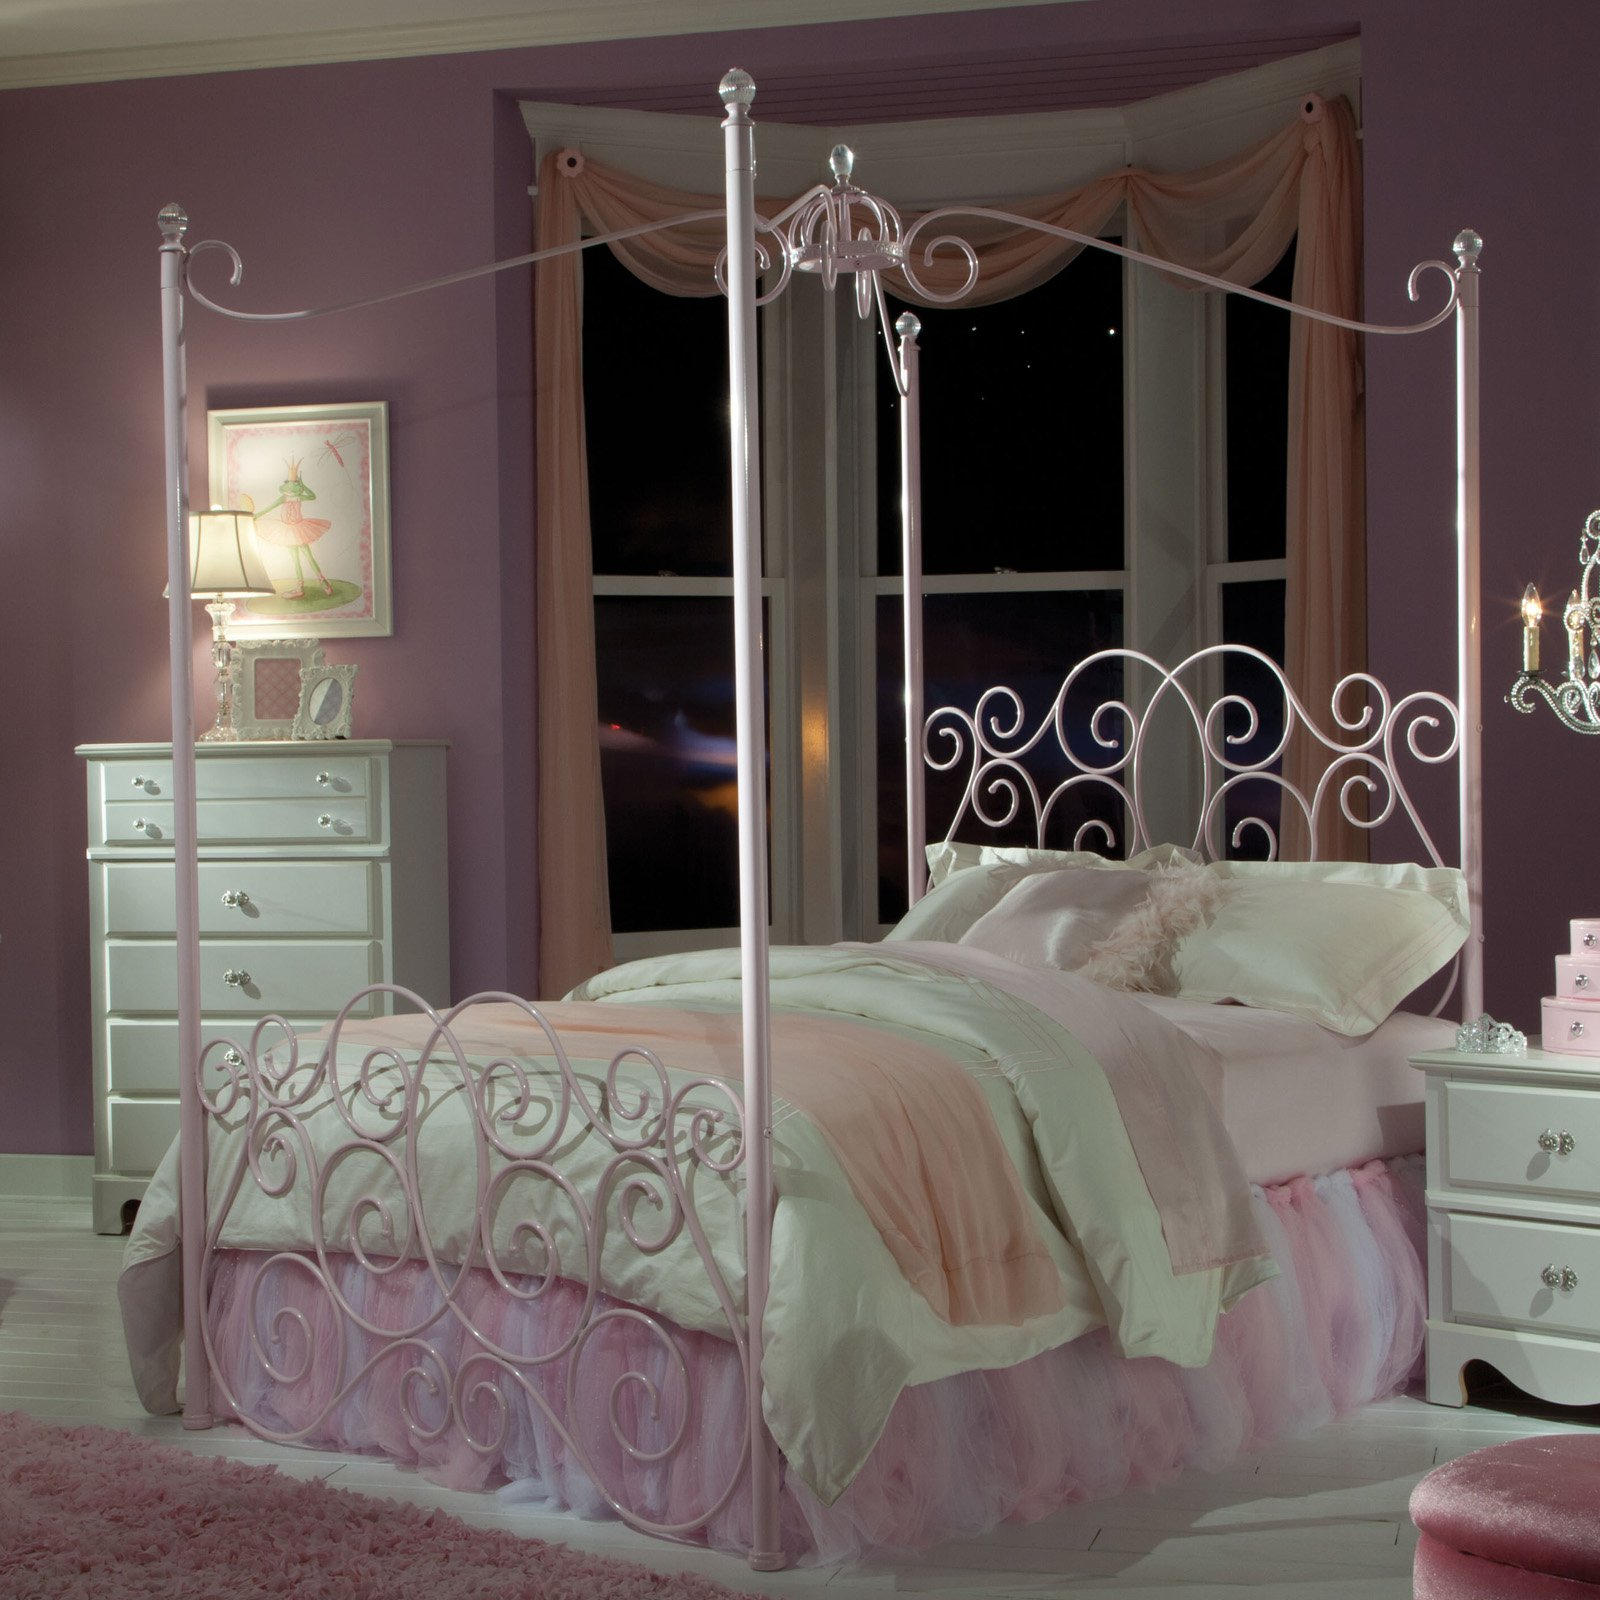 Standard Furniture Princess Metal Canopy Bed